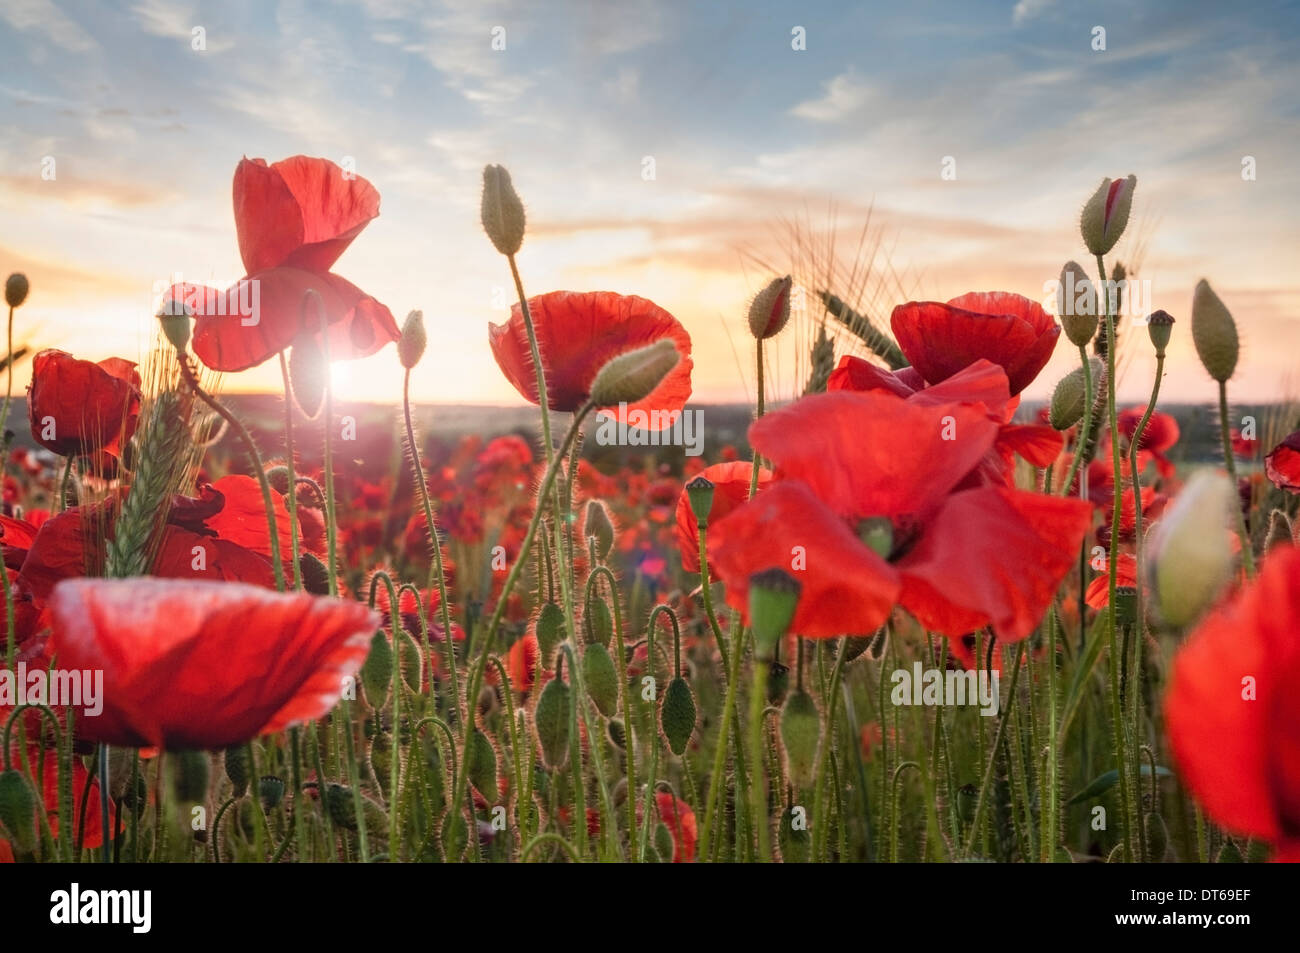 Poppy field at sunset - Stock Image